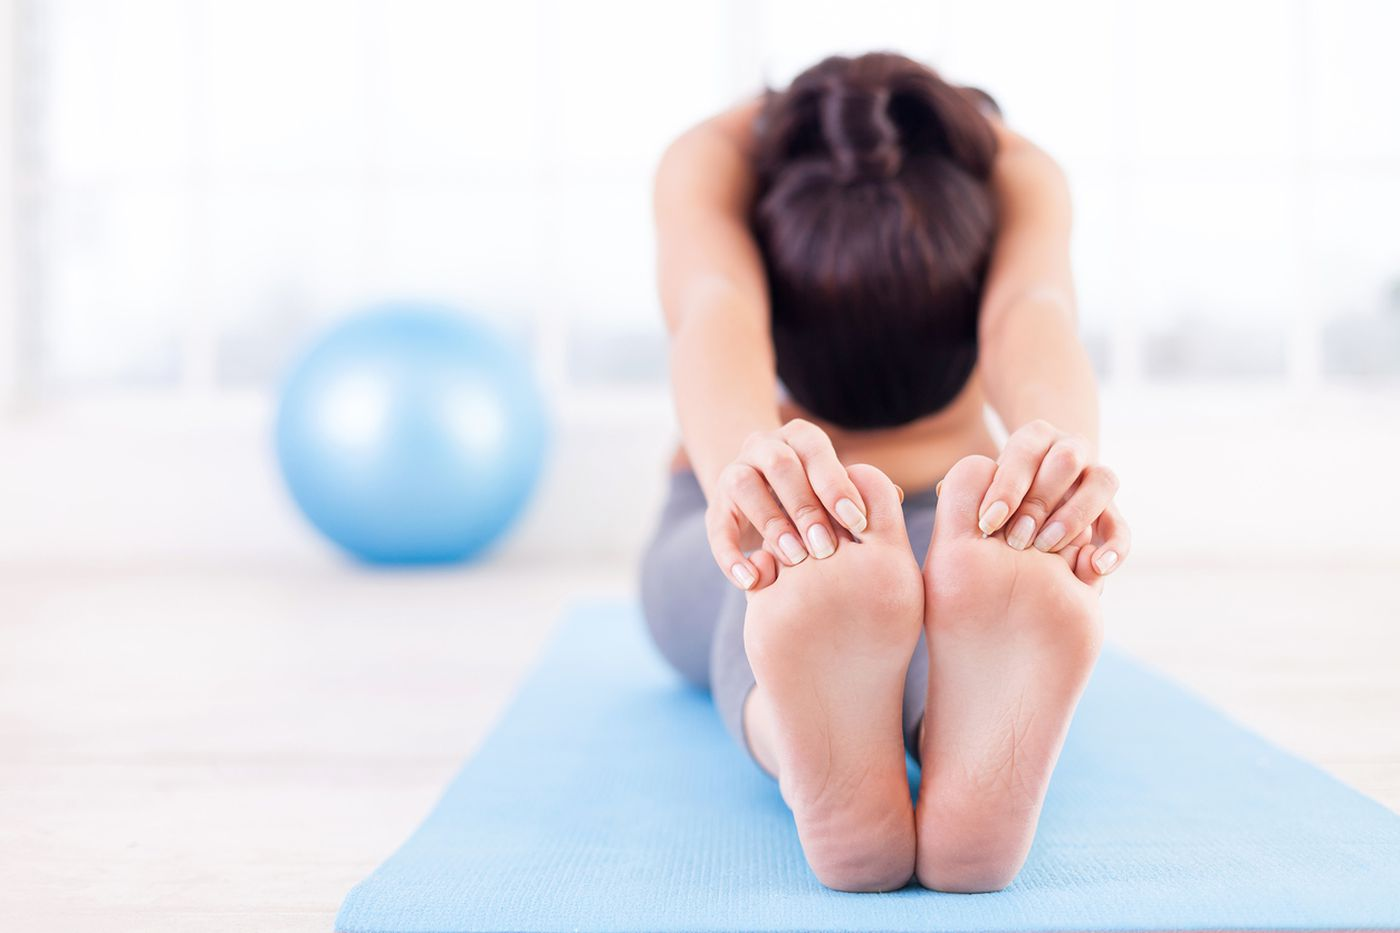 Are your feet fit? 4 foot exercises you should be doing weekly